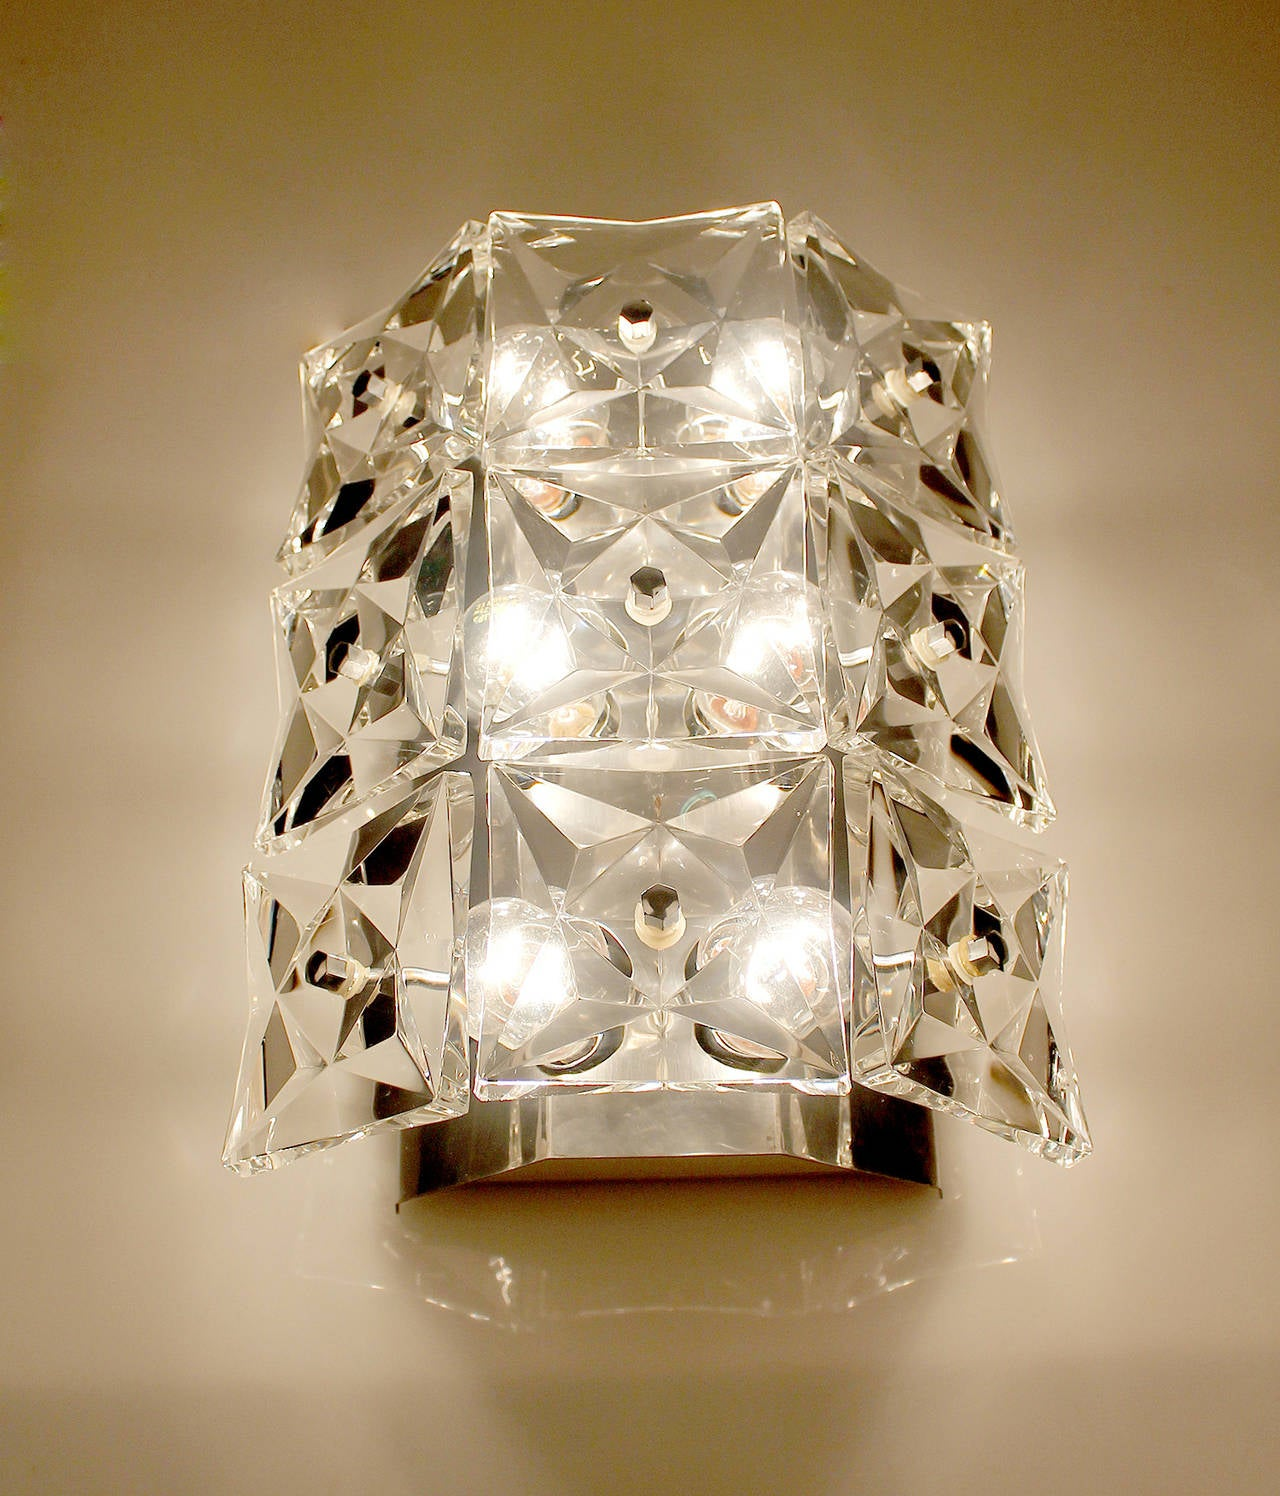 Large Crystal Wall Sconces : Pair of Large Kinkeldey Crystal Sconces Chrome Wall Lamps Modernist Design at 1stdibs